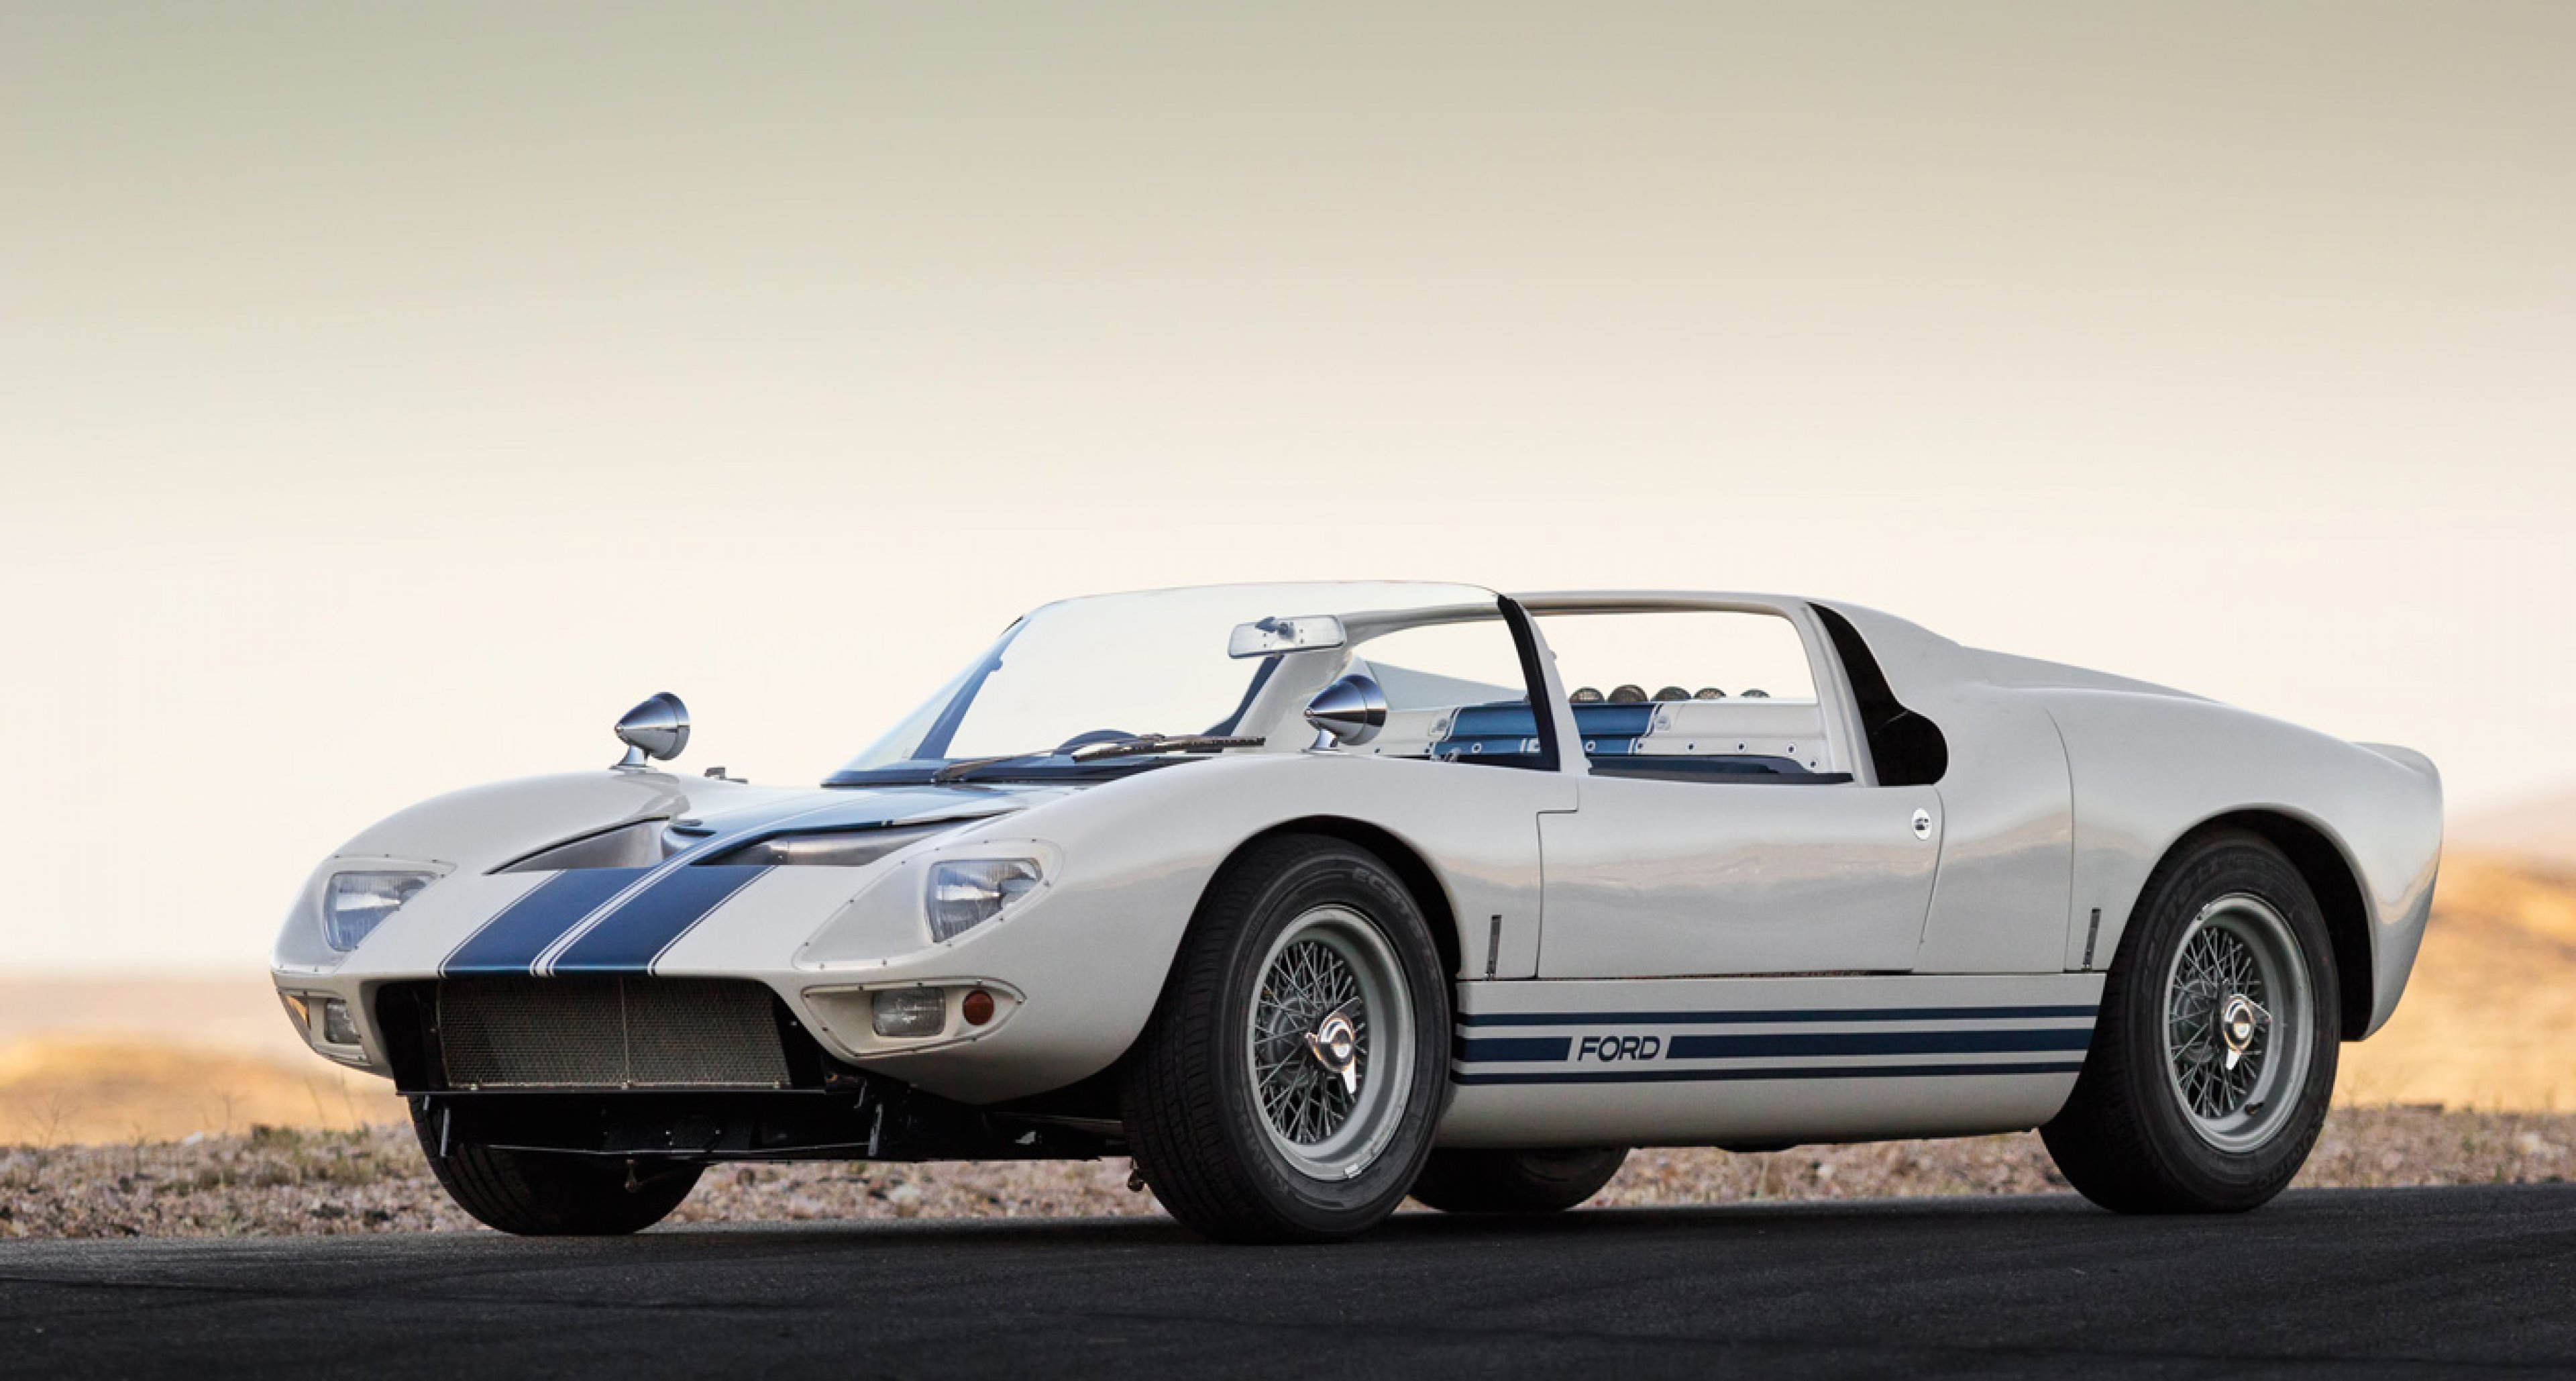 1965 Ford GT40 Roadster Prototype to be auctioned at RM's Monterey auction 2014